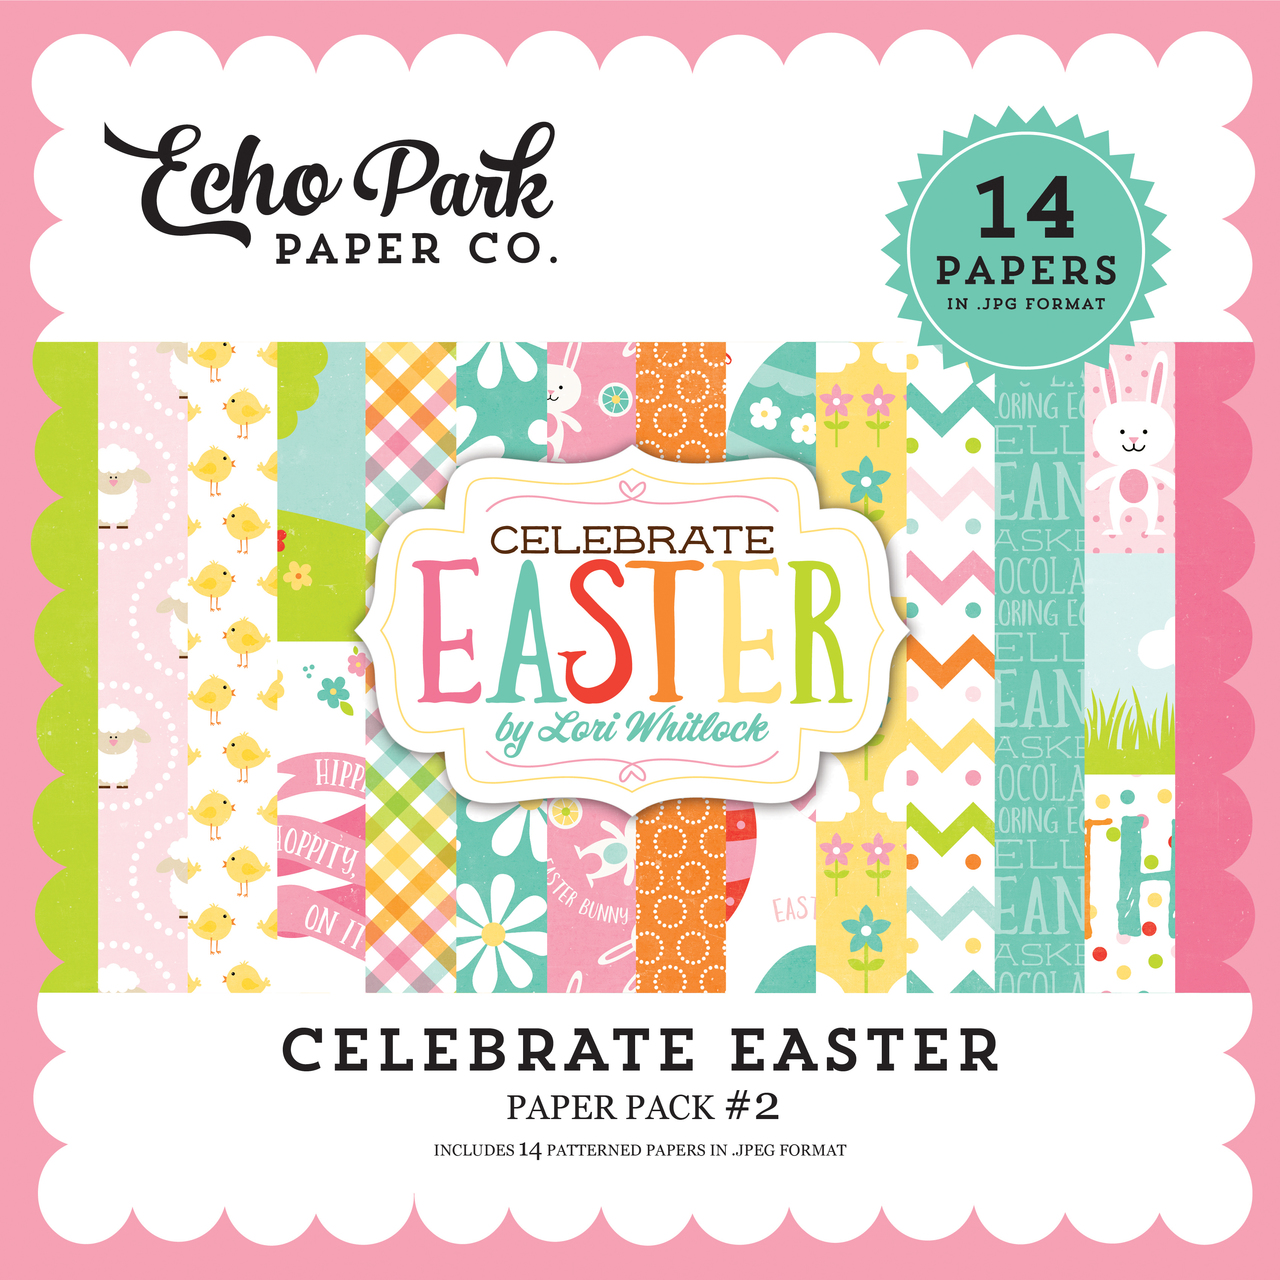 Celebrate Easter Paper Pack #2